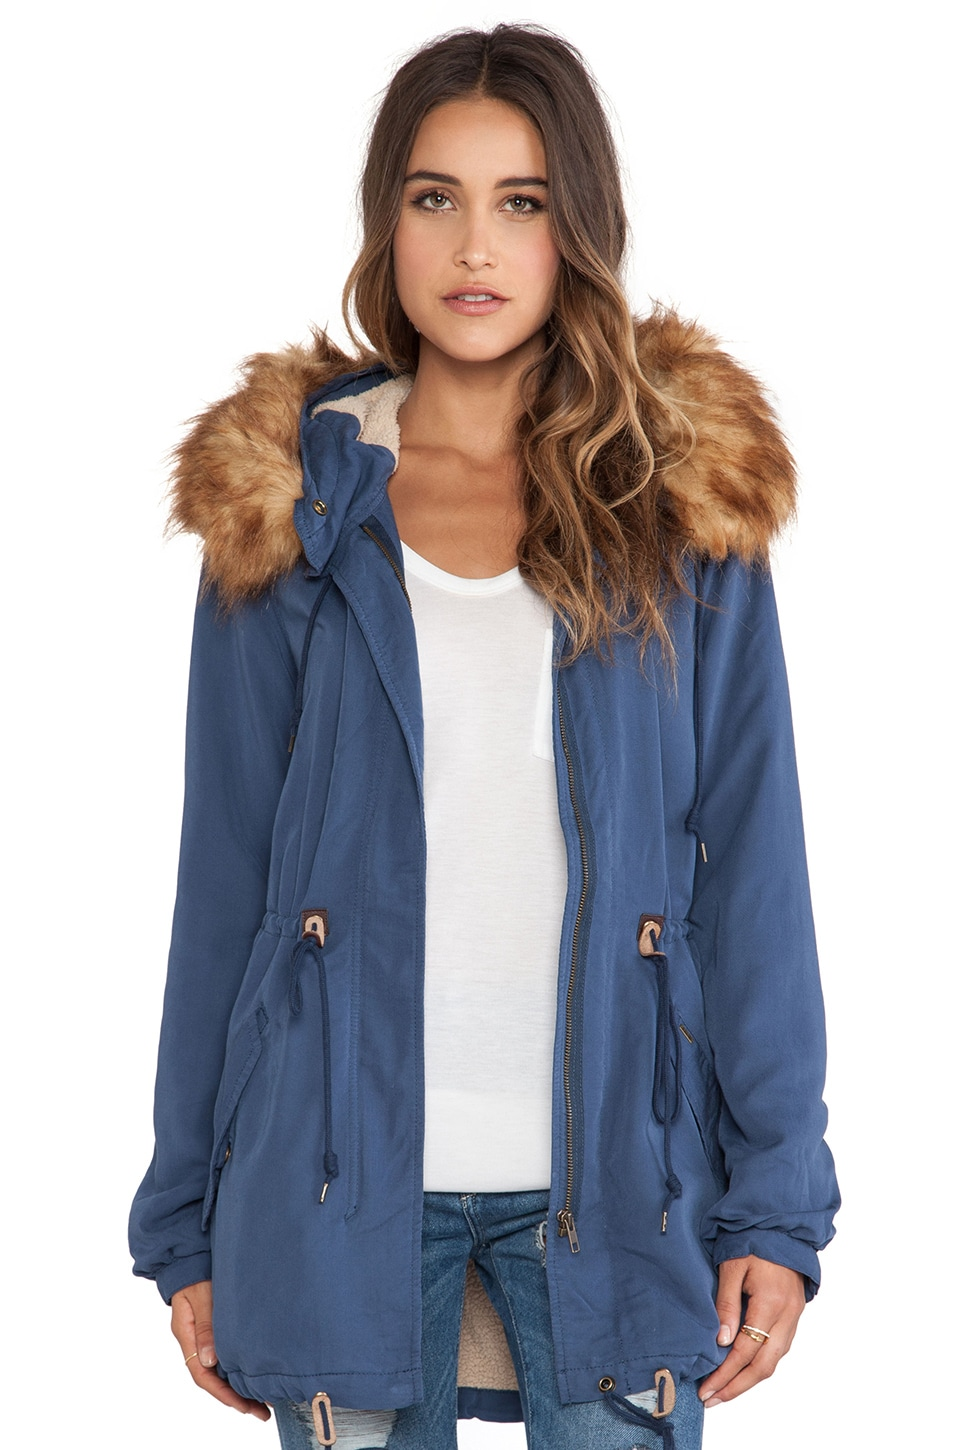 Obey Knightsbridge Jacket with Faux Fur Collar in Washed Indigo